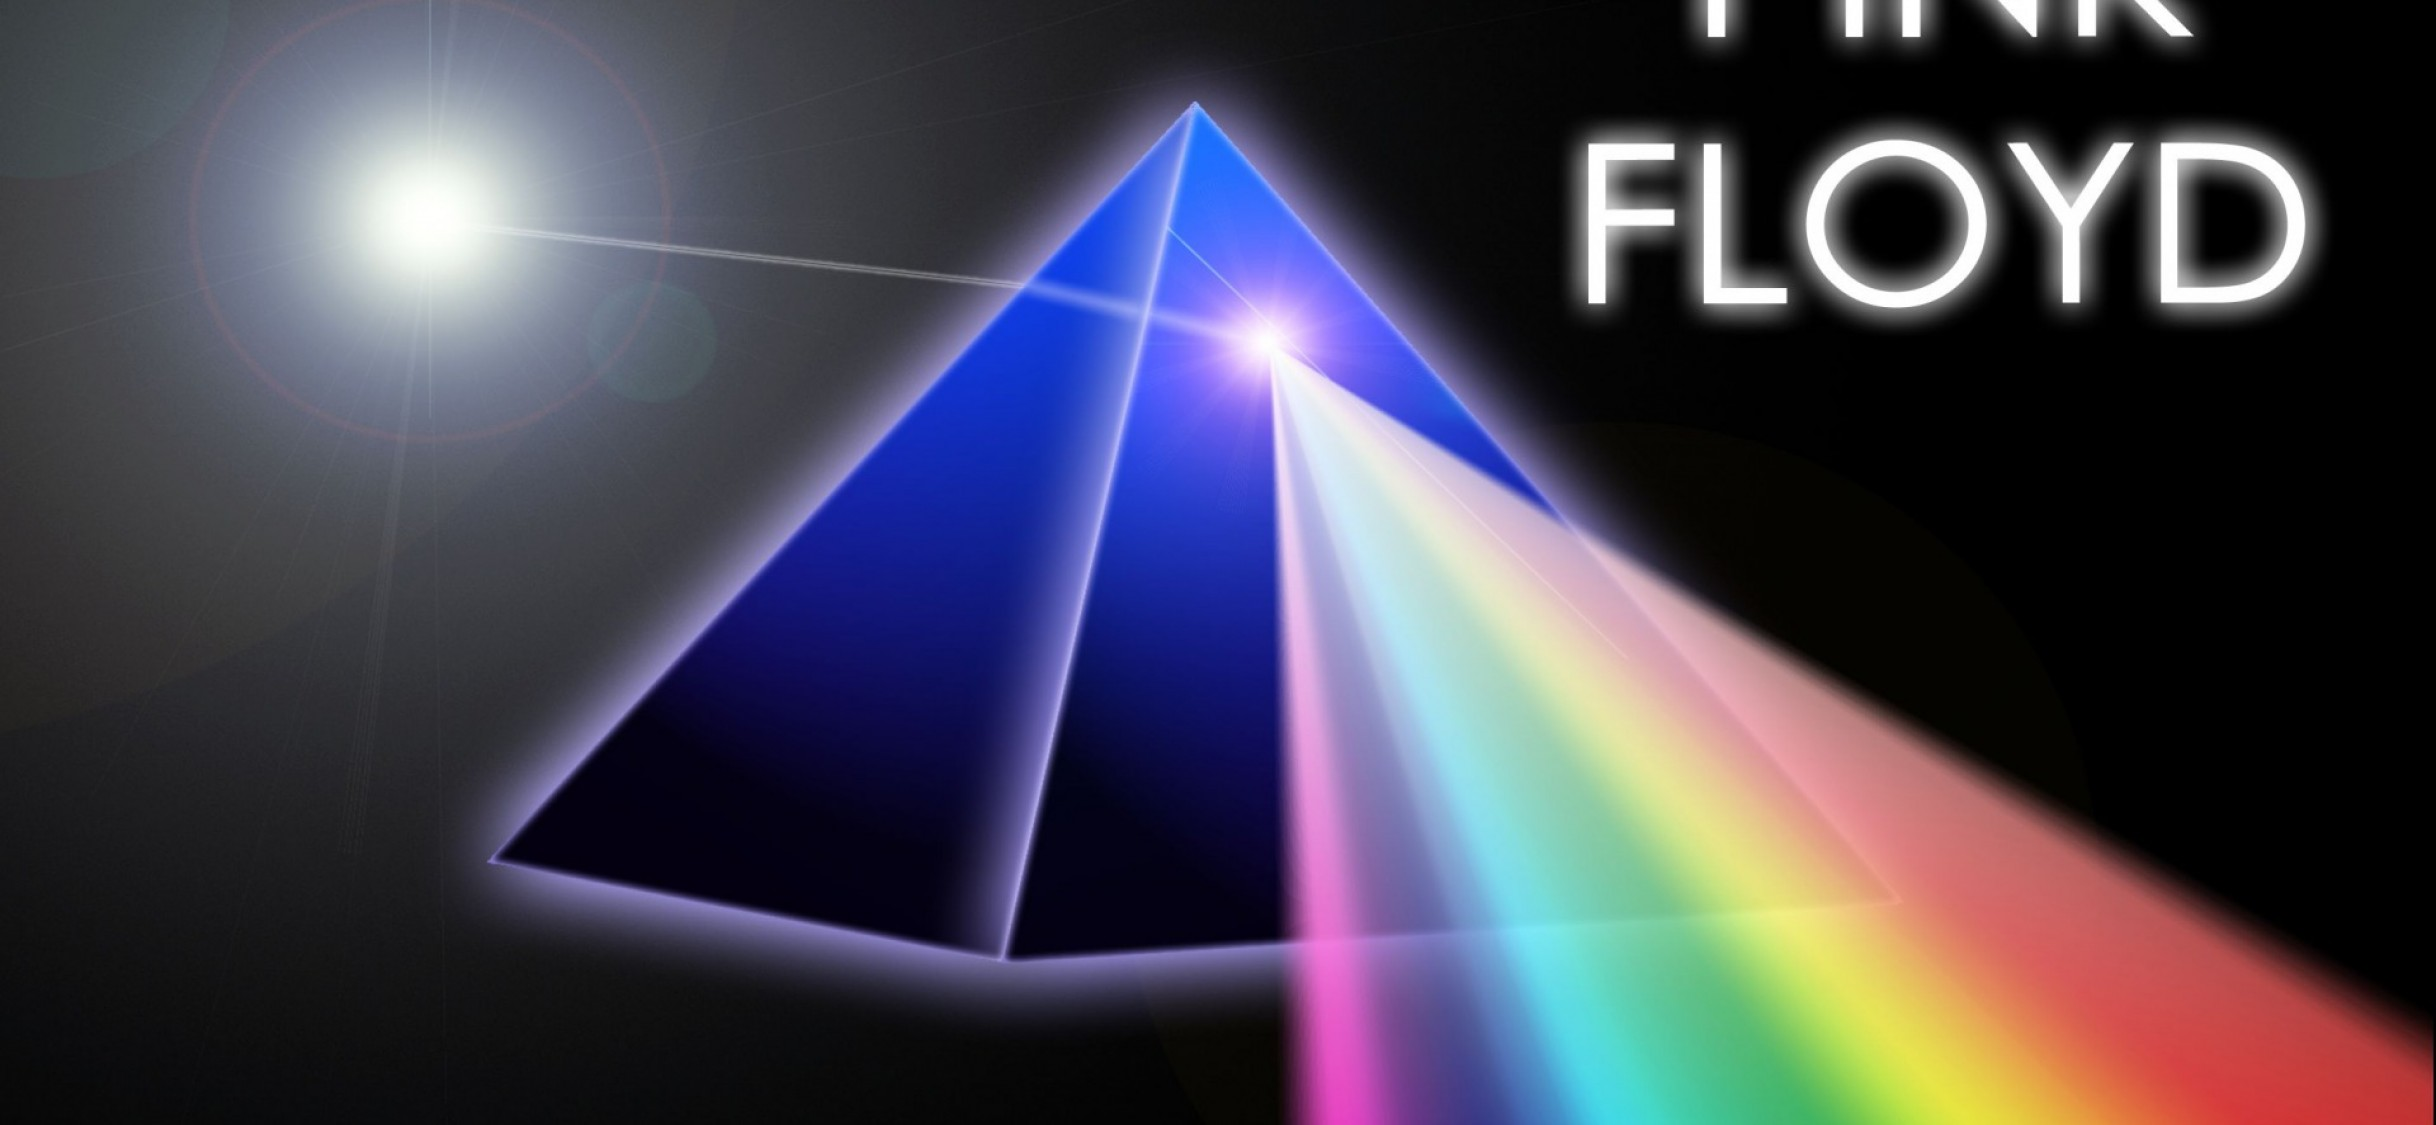 Pink Floyd The Dark Side Of The Moon Hd Wallpaper Iphone X Hd